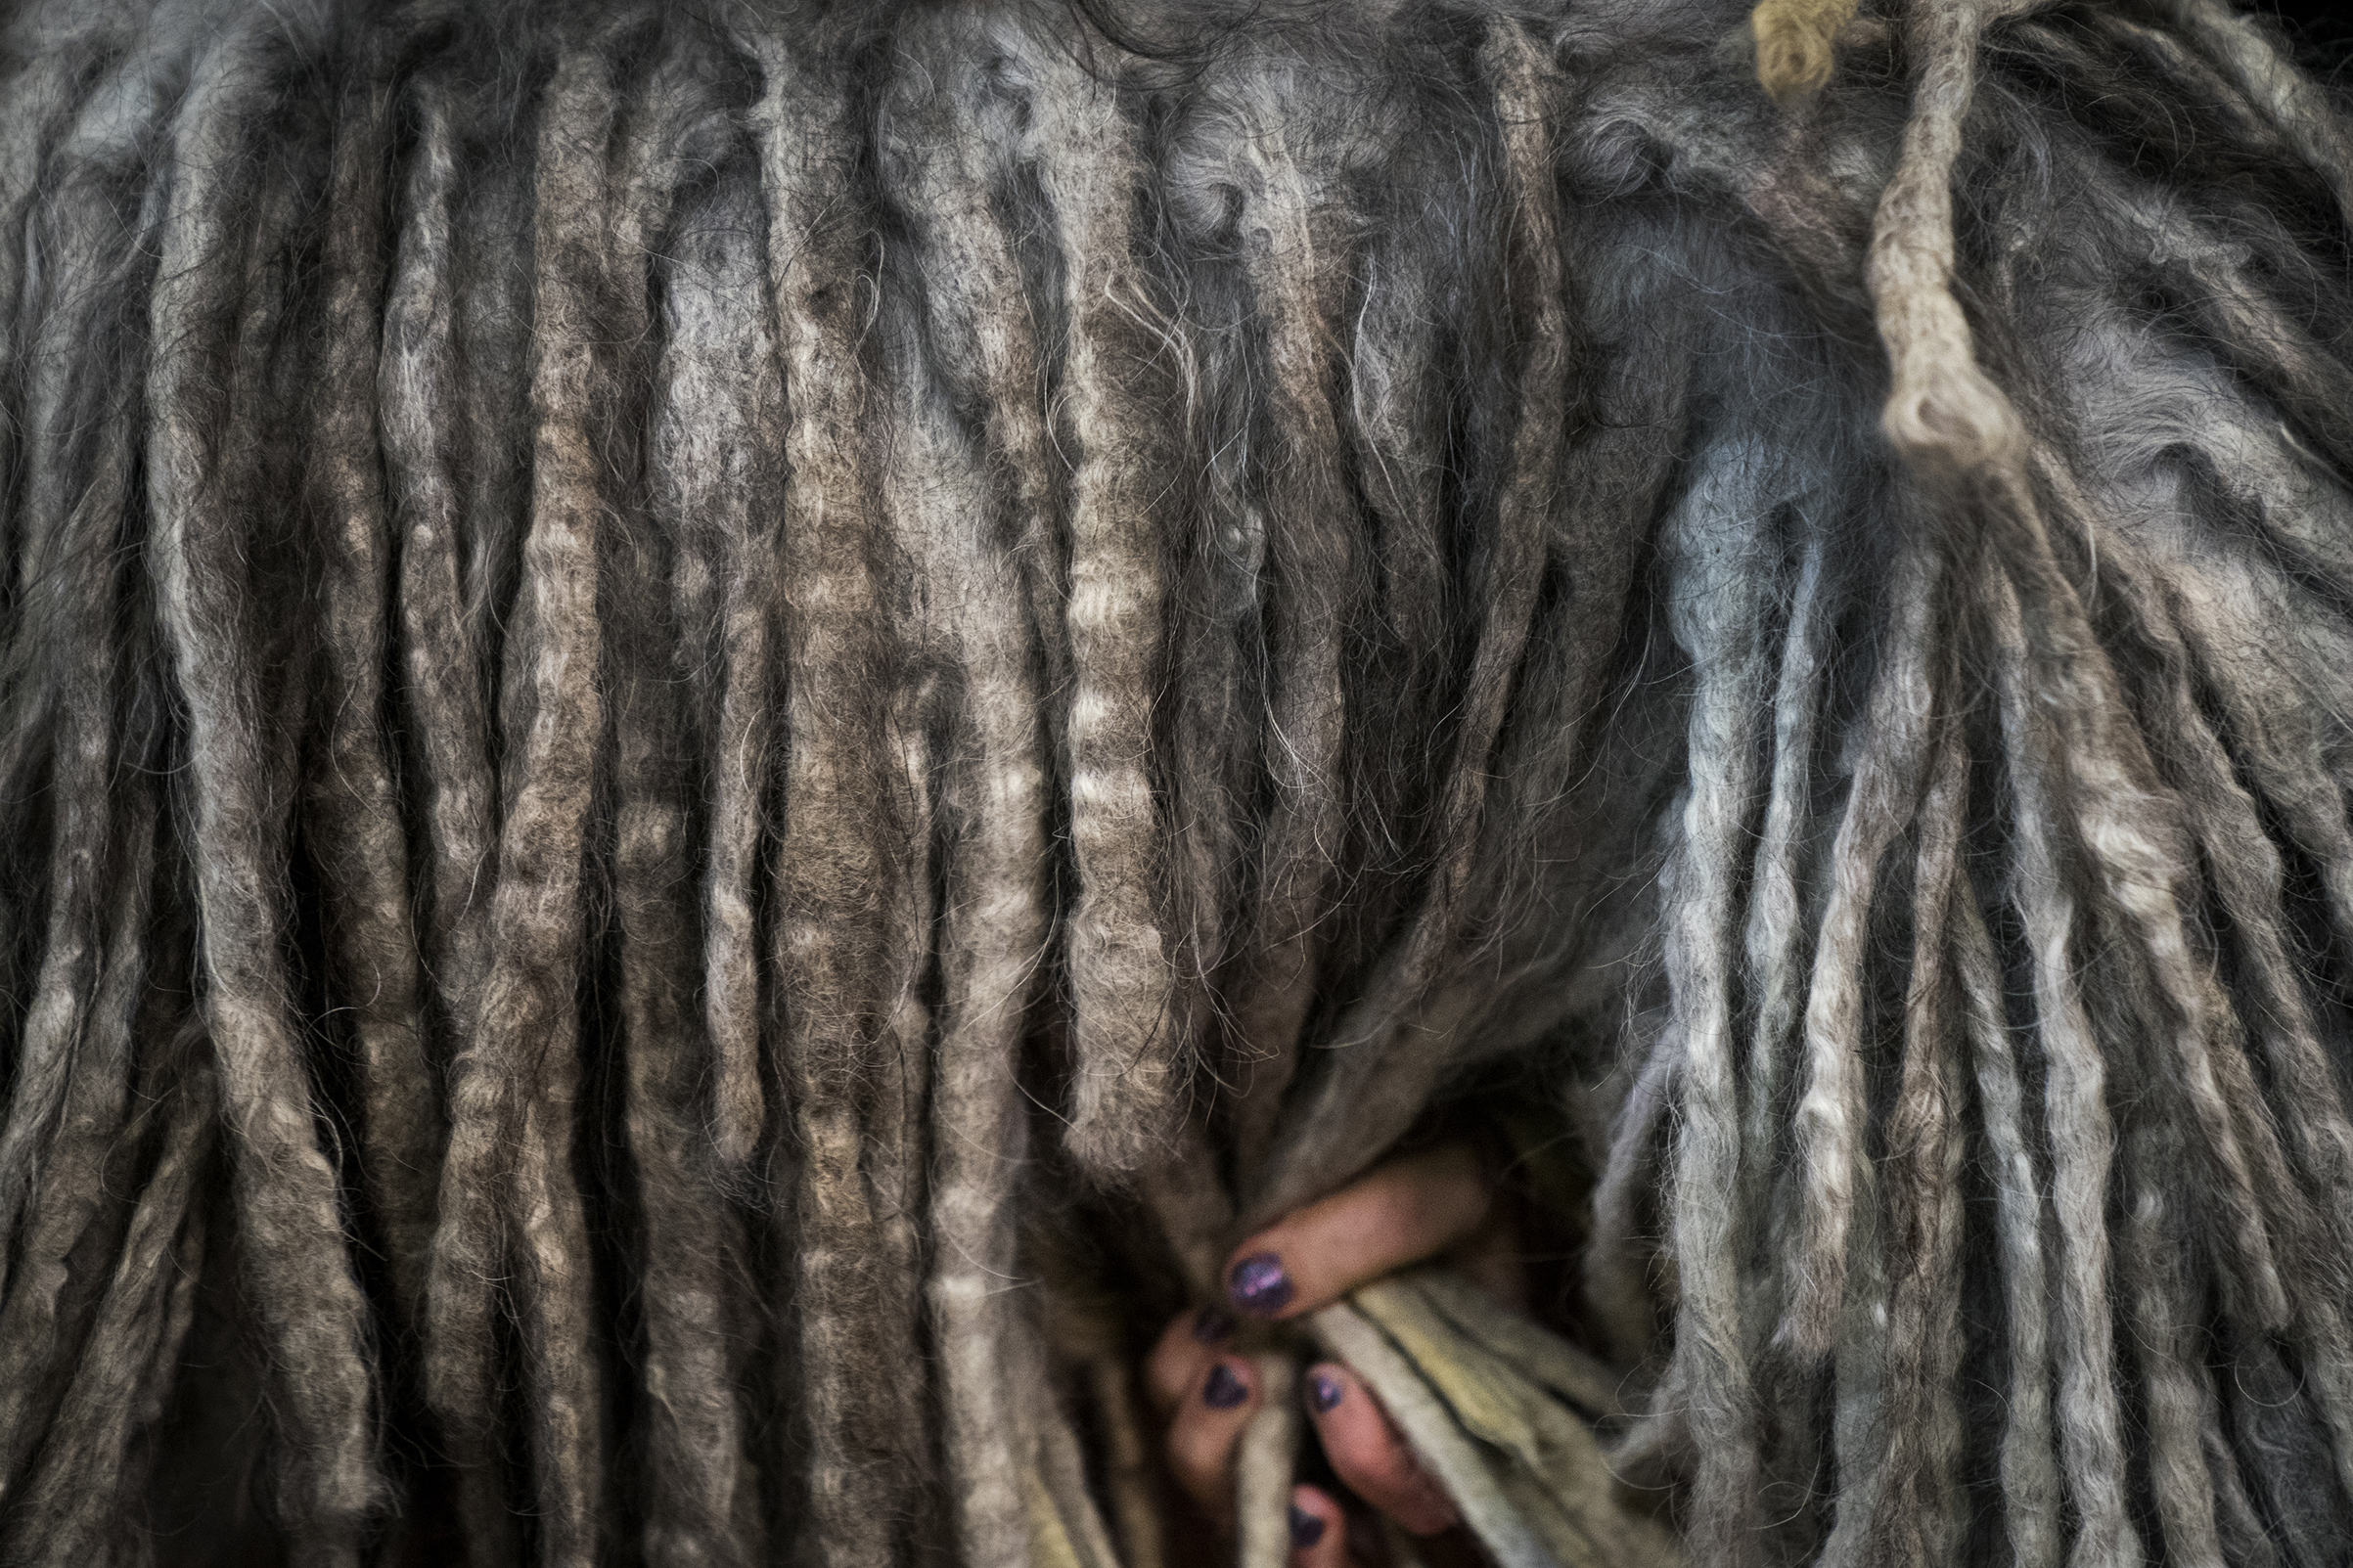 A Bergamasco Sheep Dog is groomed backstage at the 142nd Westminster Kennel Club Dog Show at The Piers in New York on Feb. 12, 2018.